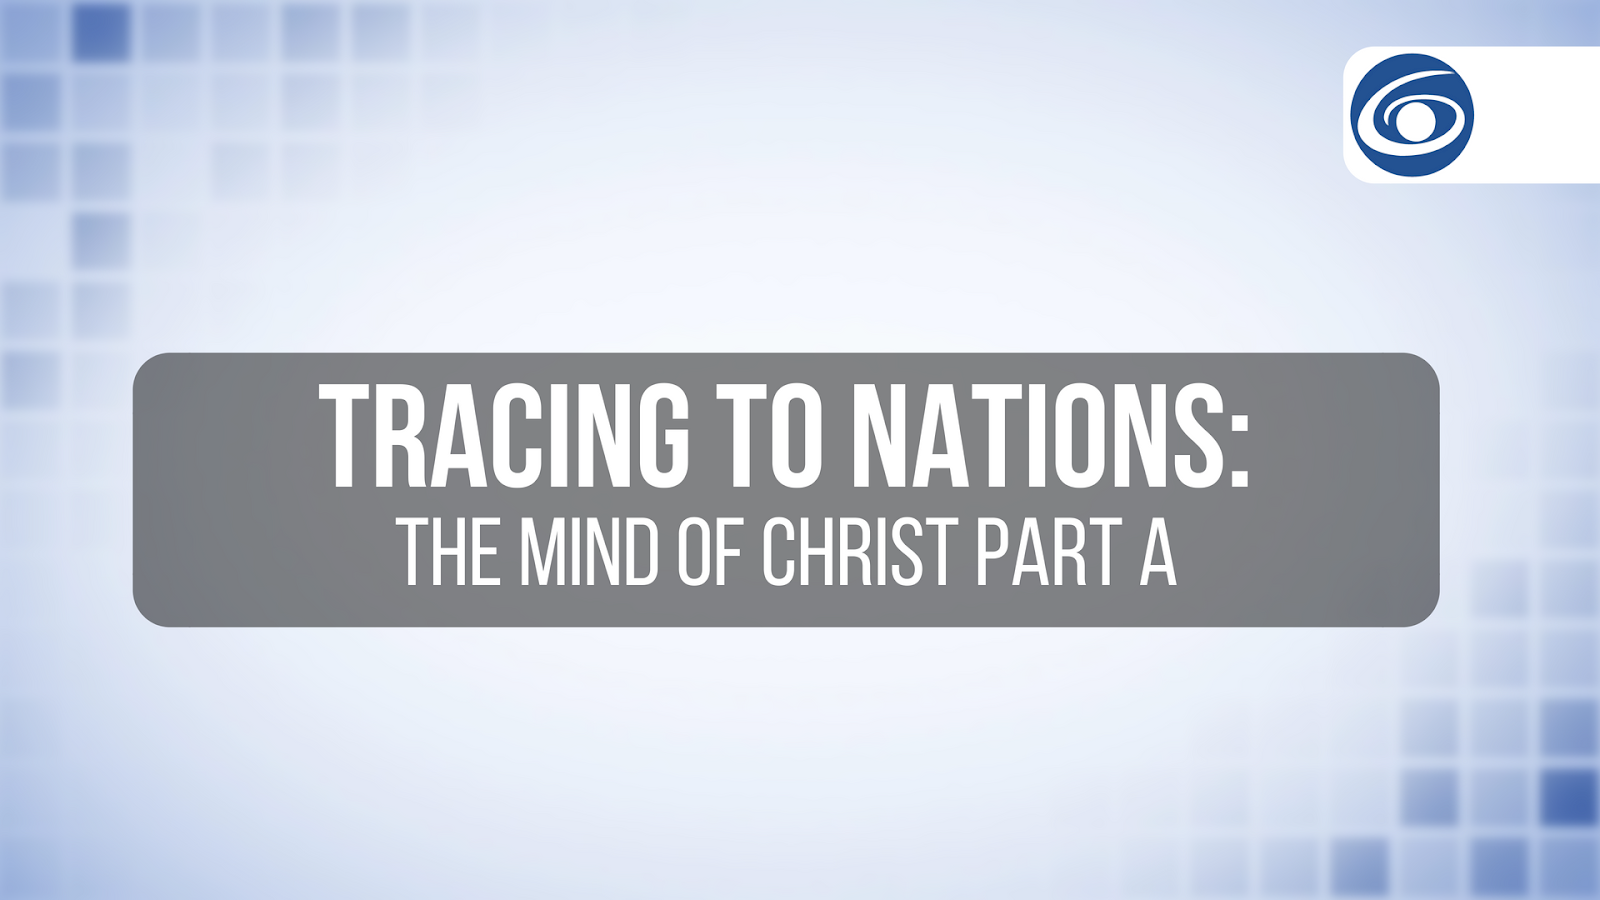 TV GRACE Tracing to Nations: The Mind of Christ Part A